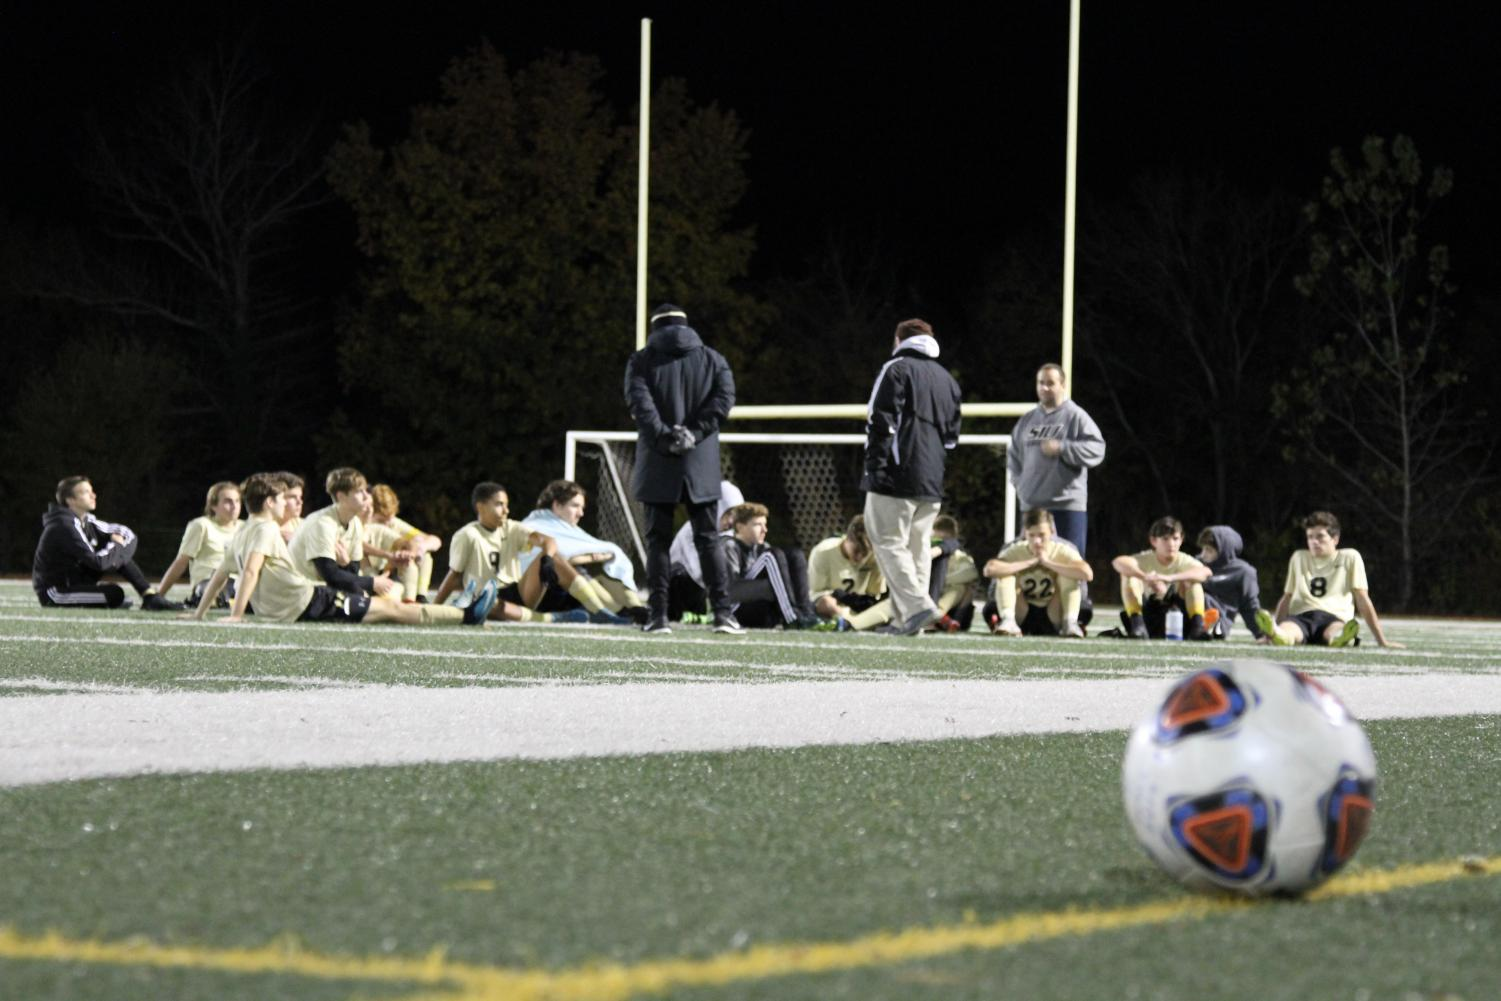 The Windsor soccer team has won back-to-back district championships.